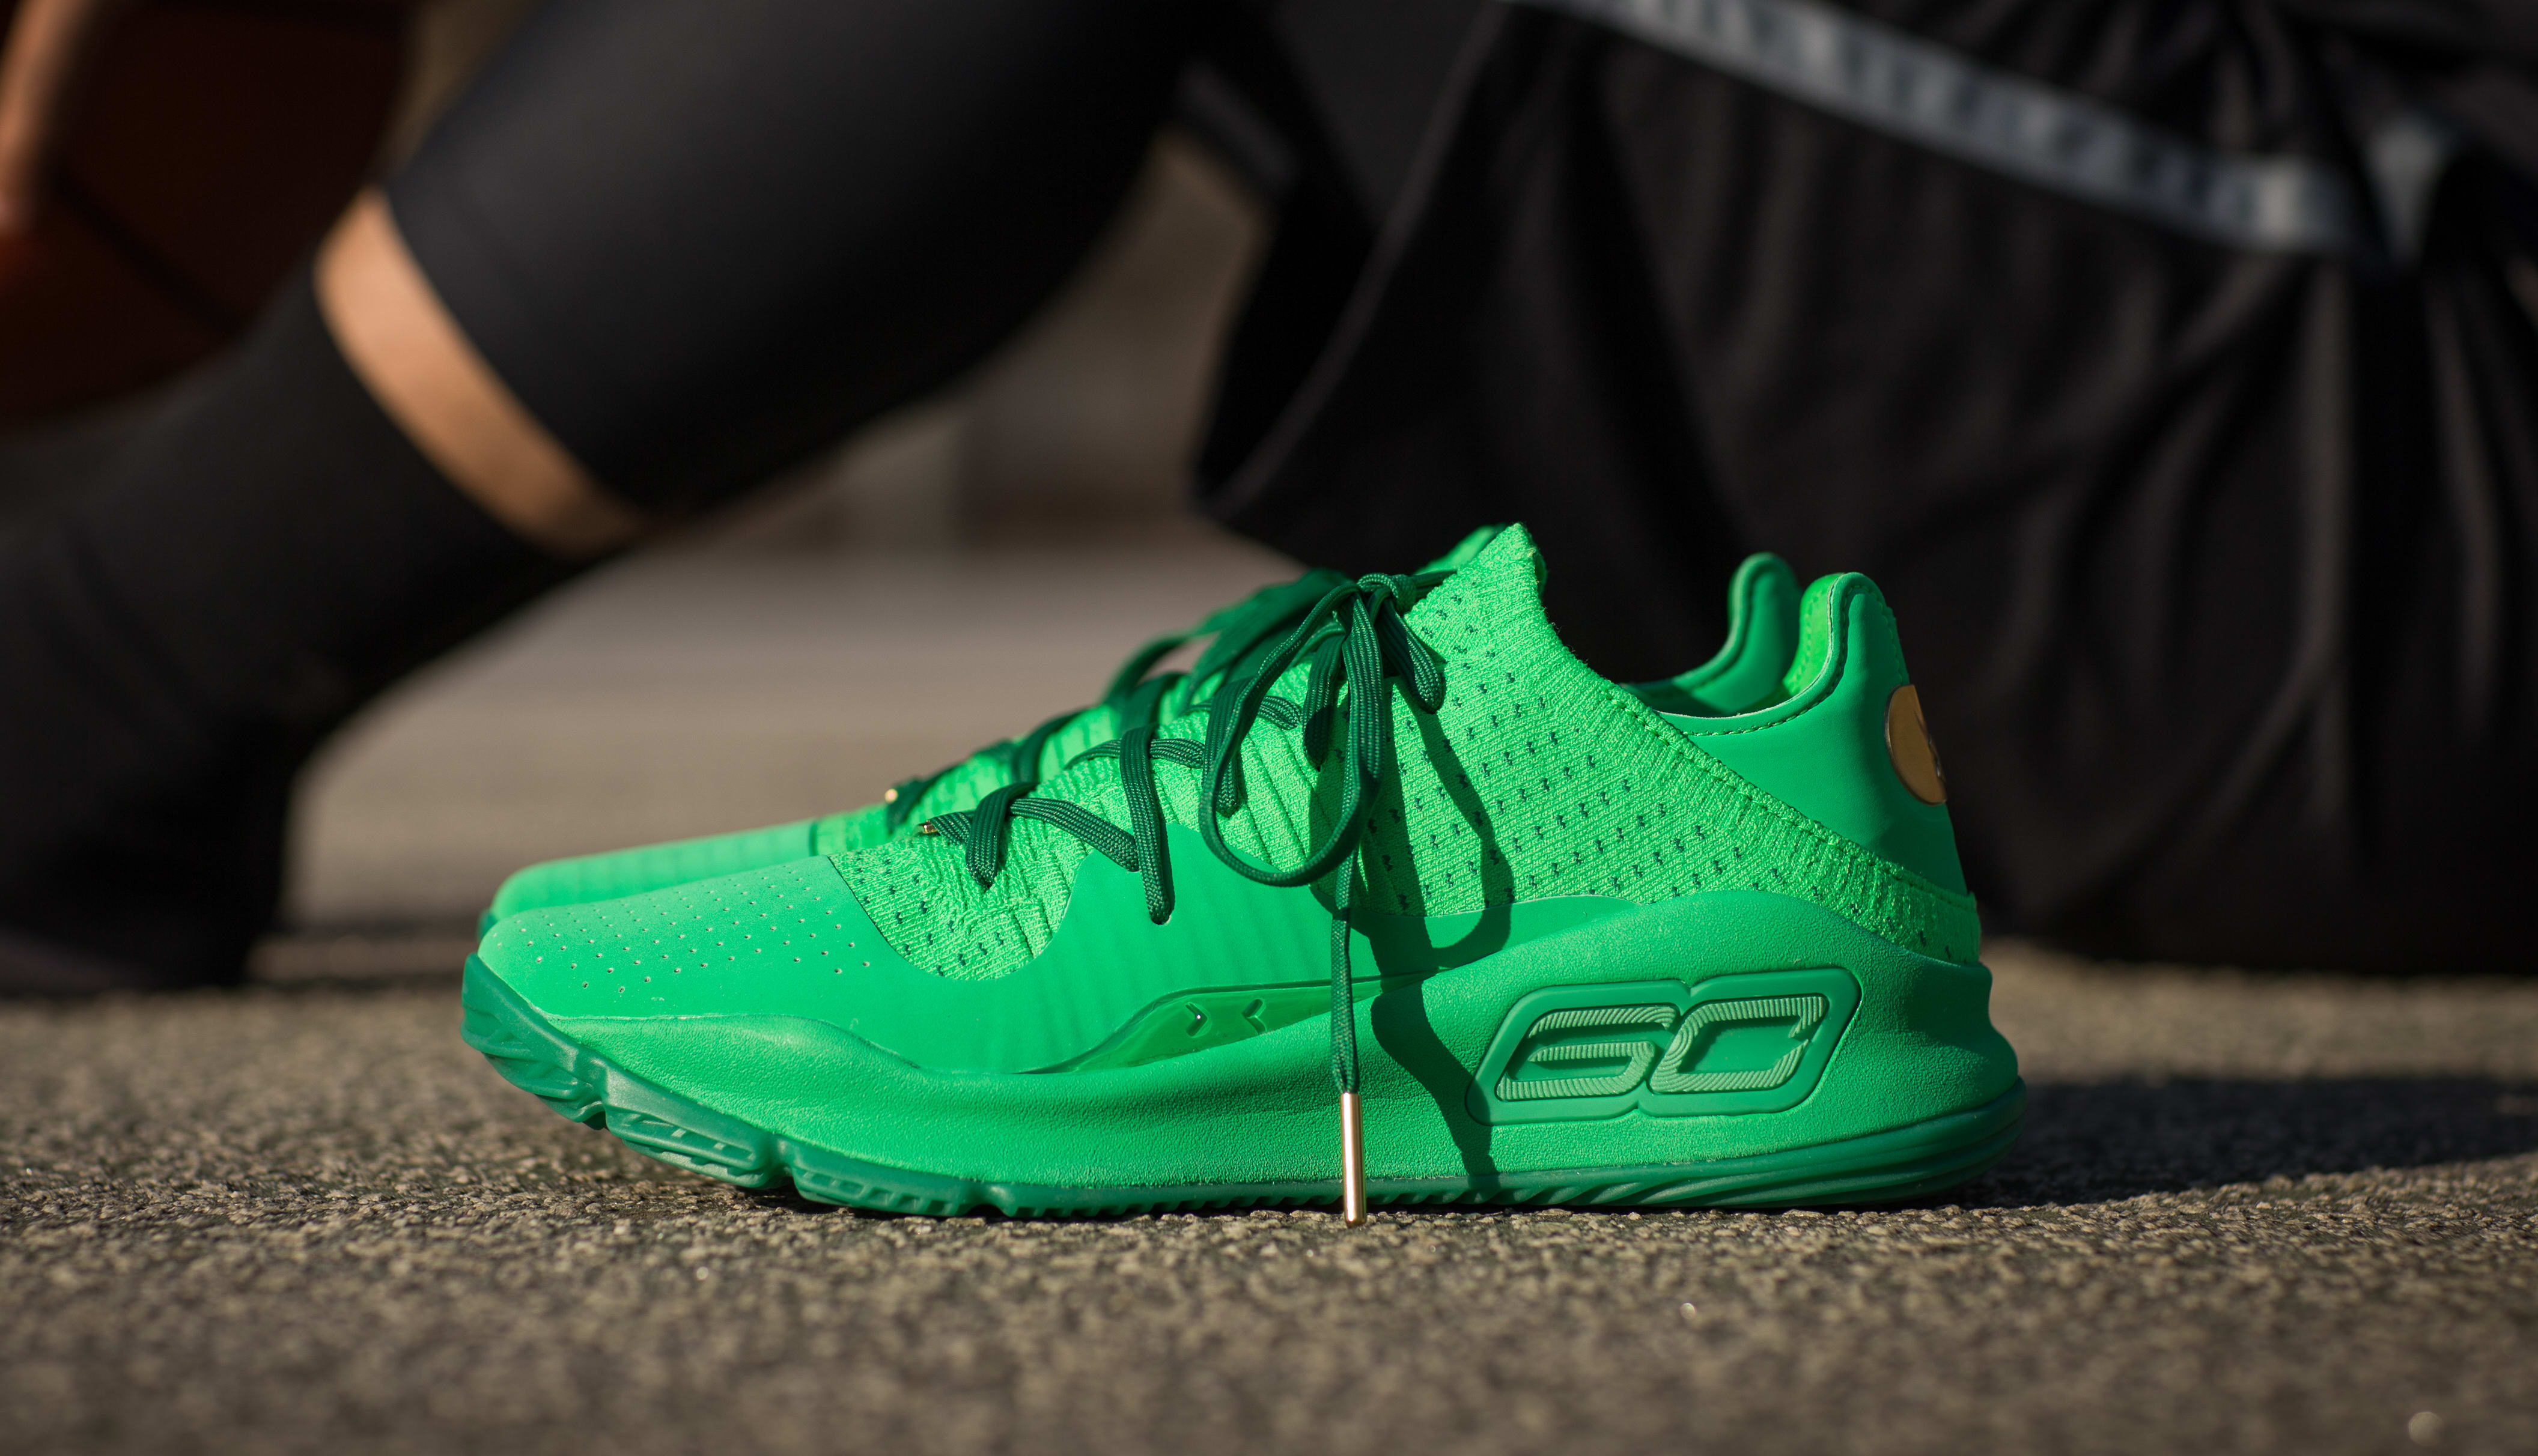 Under Armour Curry 4 Low 'Green'